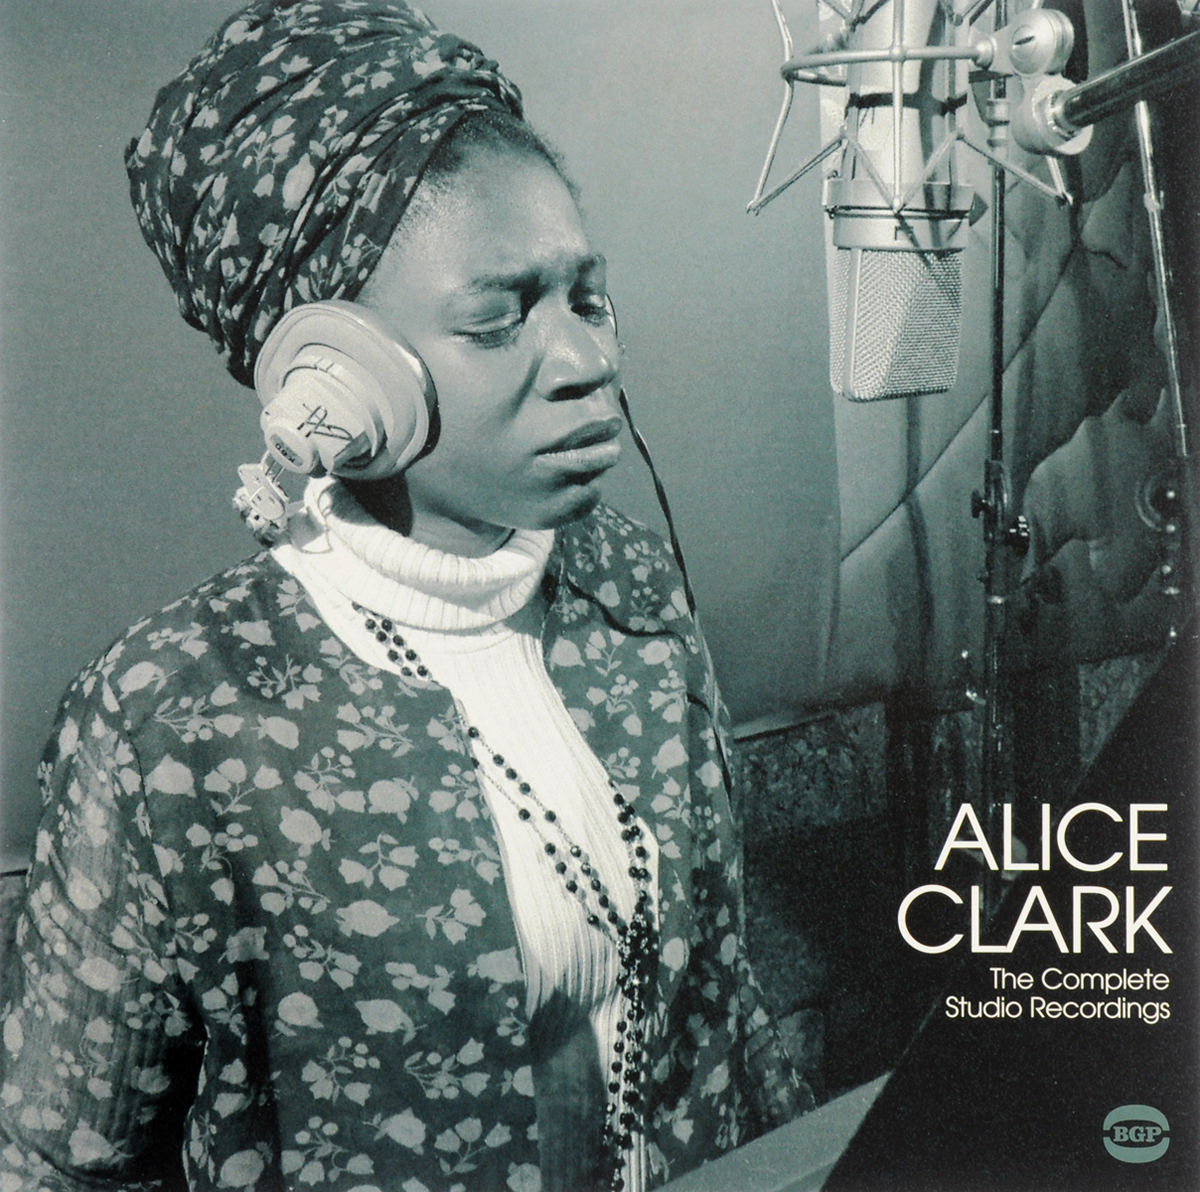 лучшая цена Элис Кларк Alice Clark. The Complete Studio Recordings (LP)